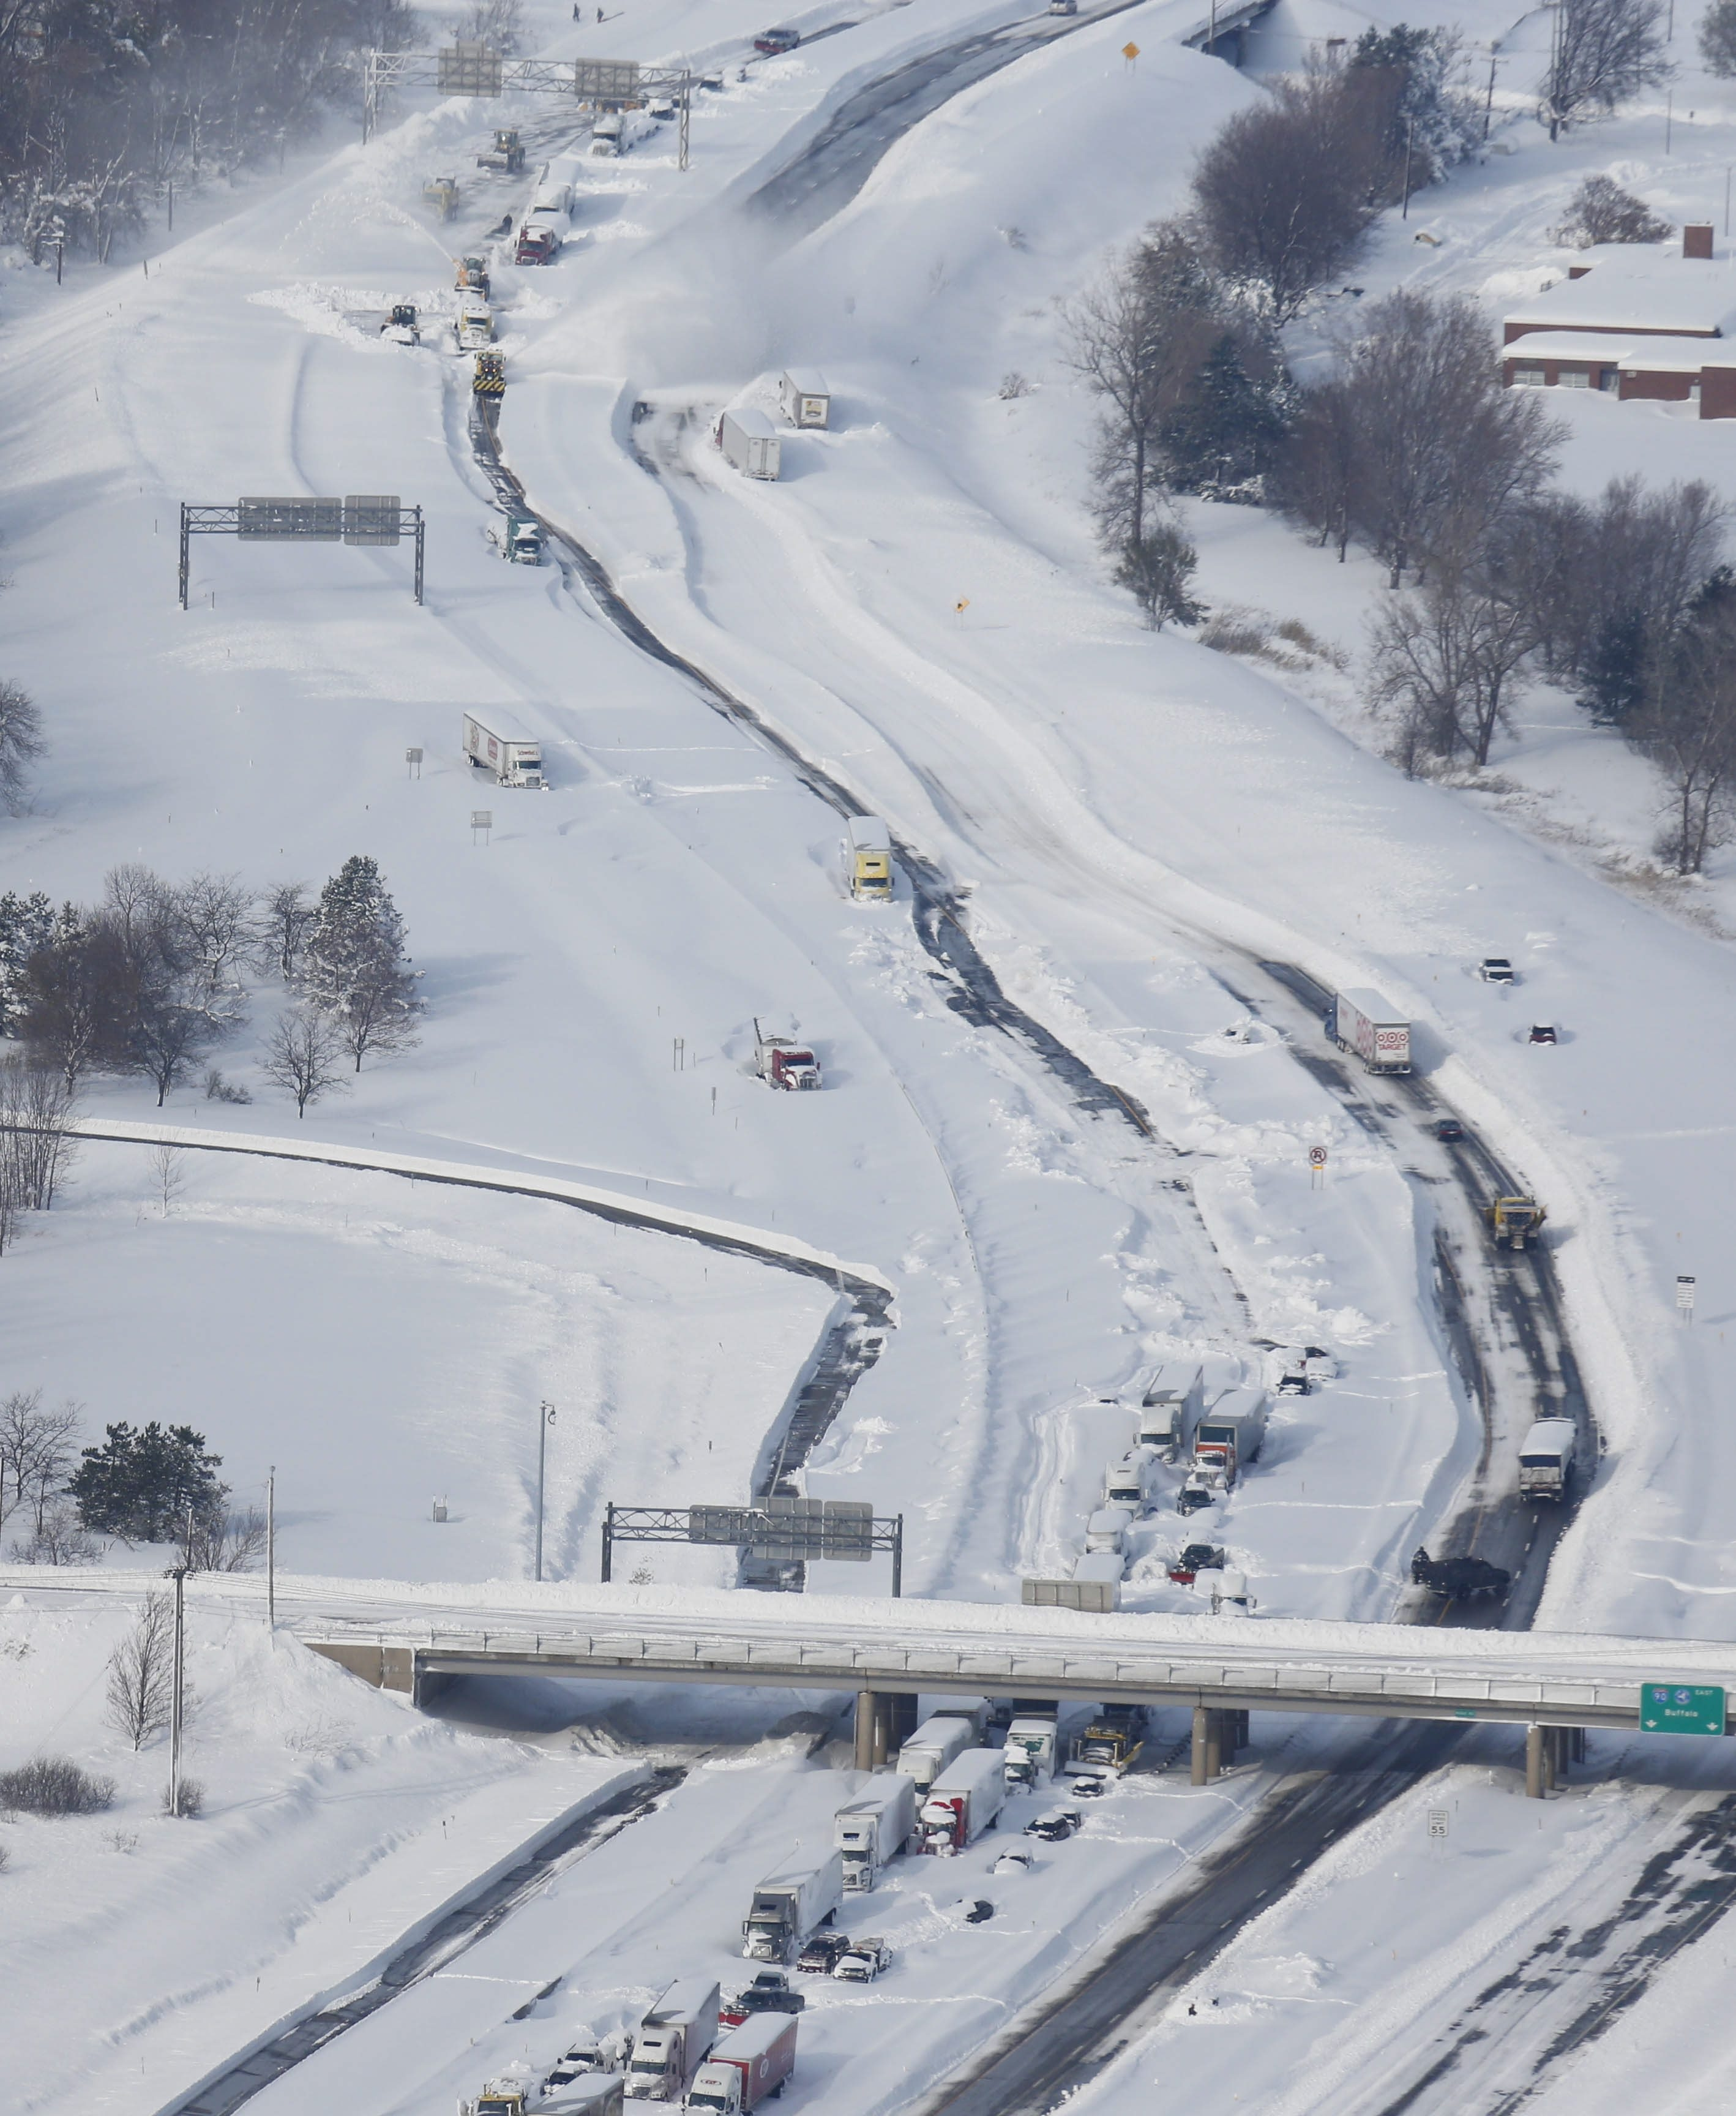 Crews continue work to free motorists stranded on the New York State Thruway near Ridge Road, Wednesday, Nov. 19, 2014.  (Derek Gee/Buffalo News)